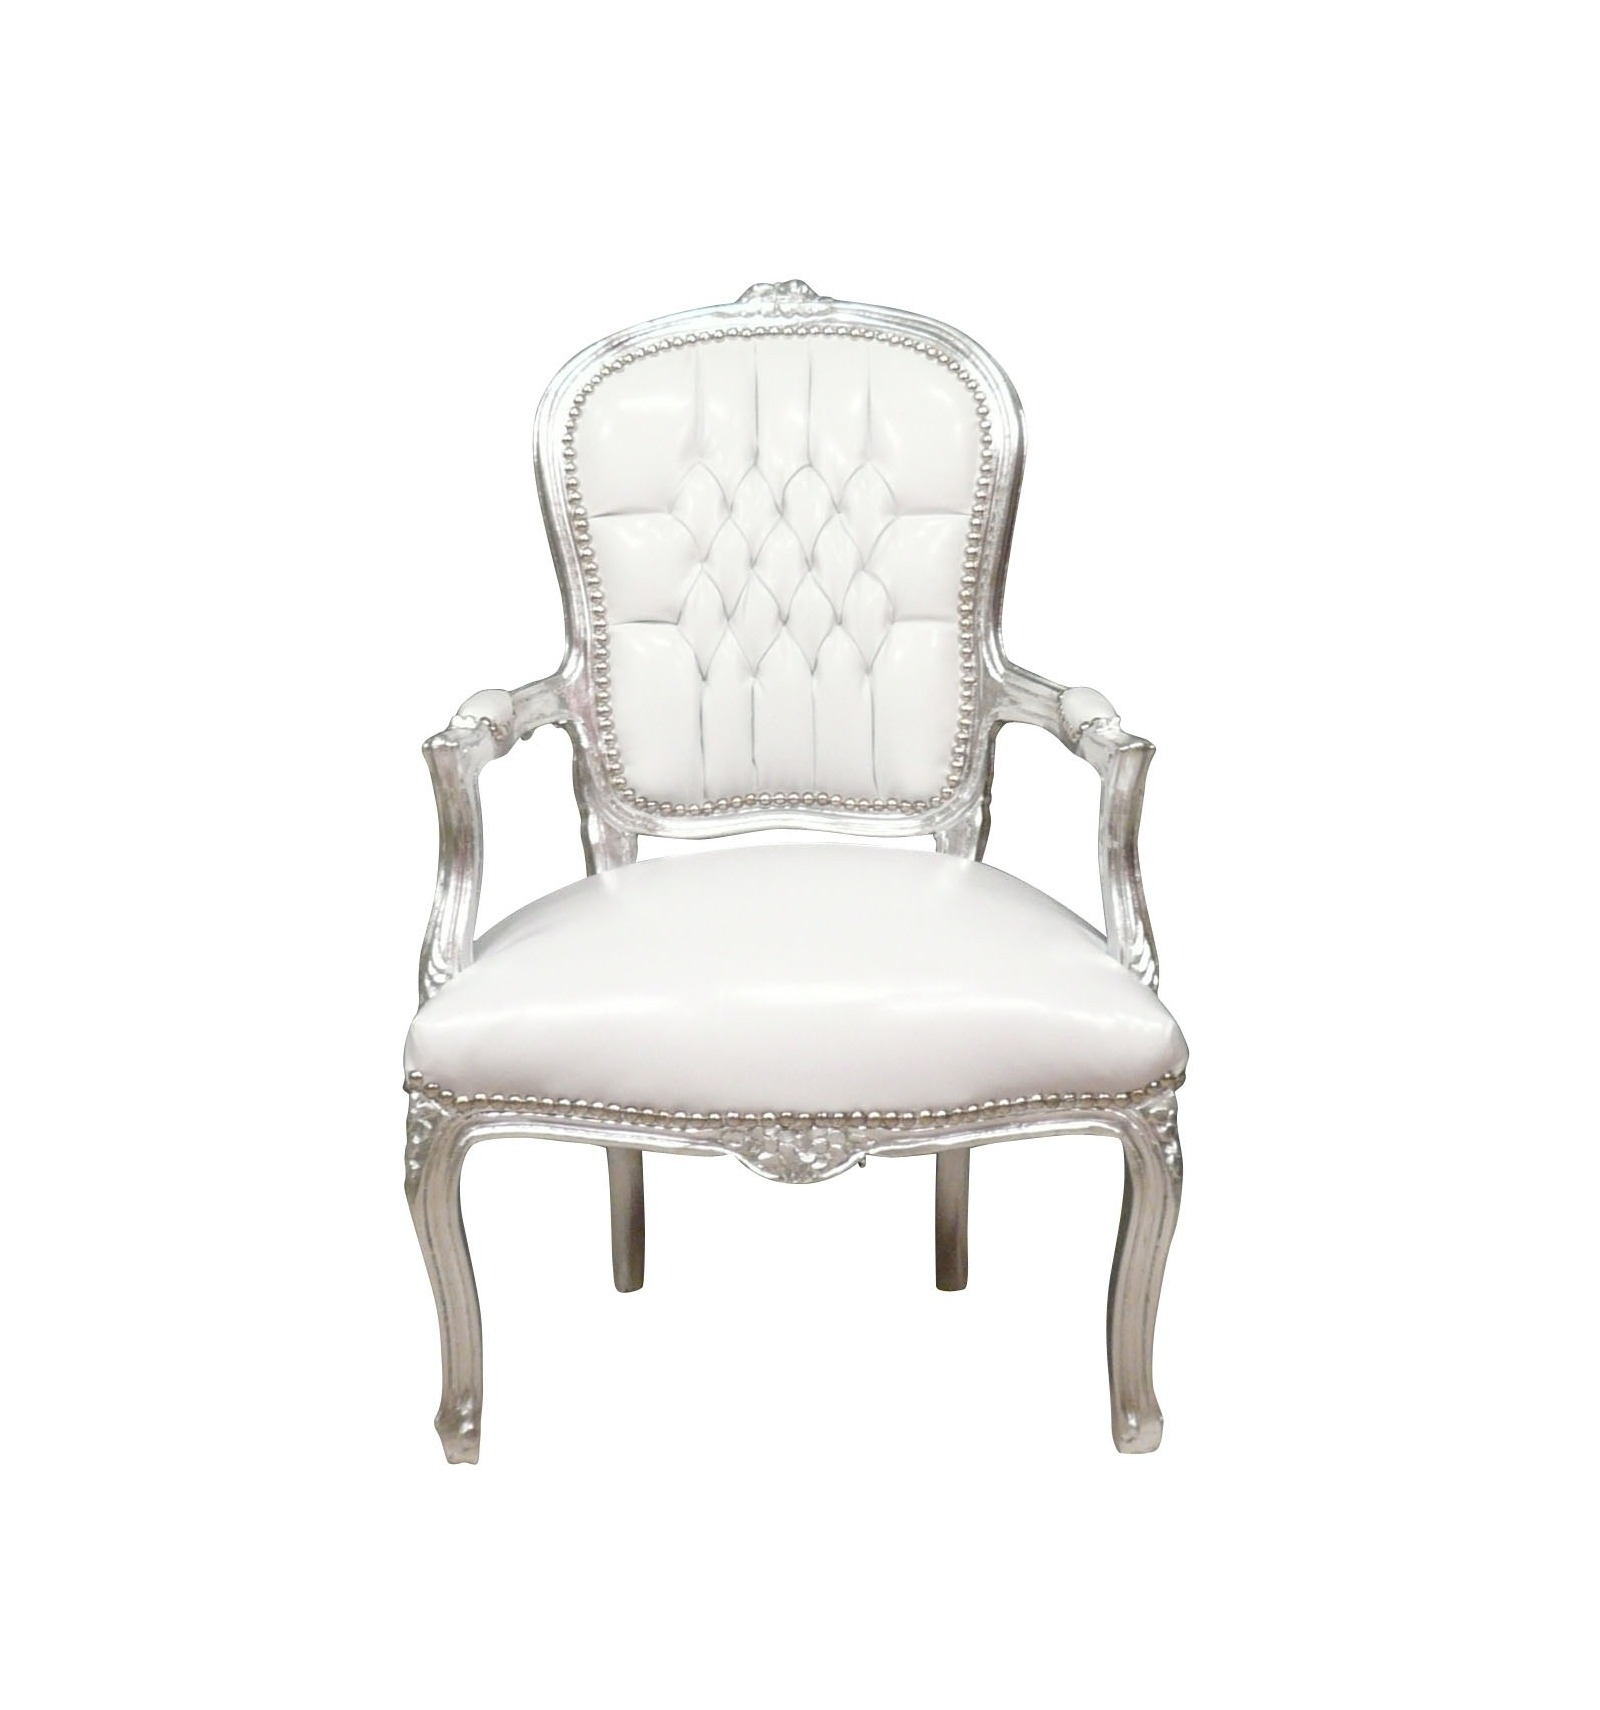 fauteuil baroque louis xv blanc et argent fauteuils louis xv. Black Bedroom Furniture Sets. Home Design Ideas